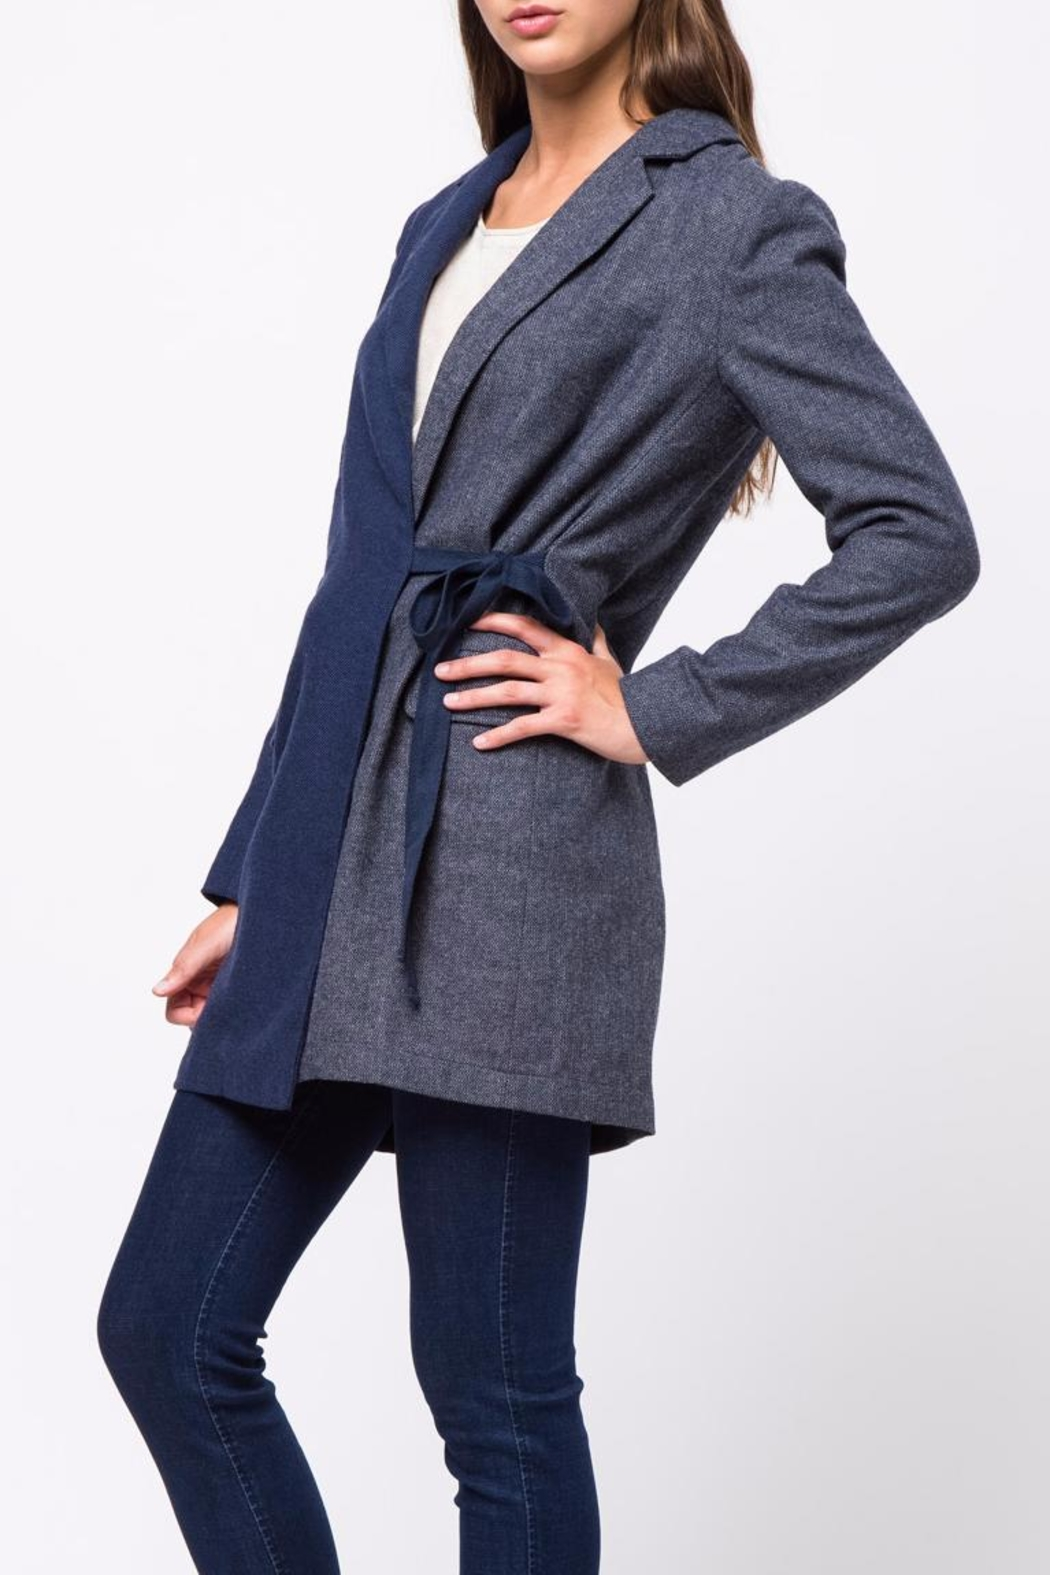 Movint Waist Belt Tailored Jacket - Side Cropped Image